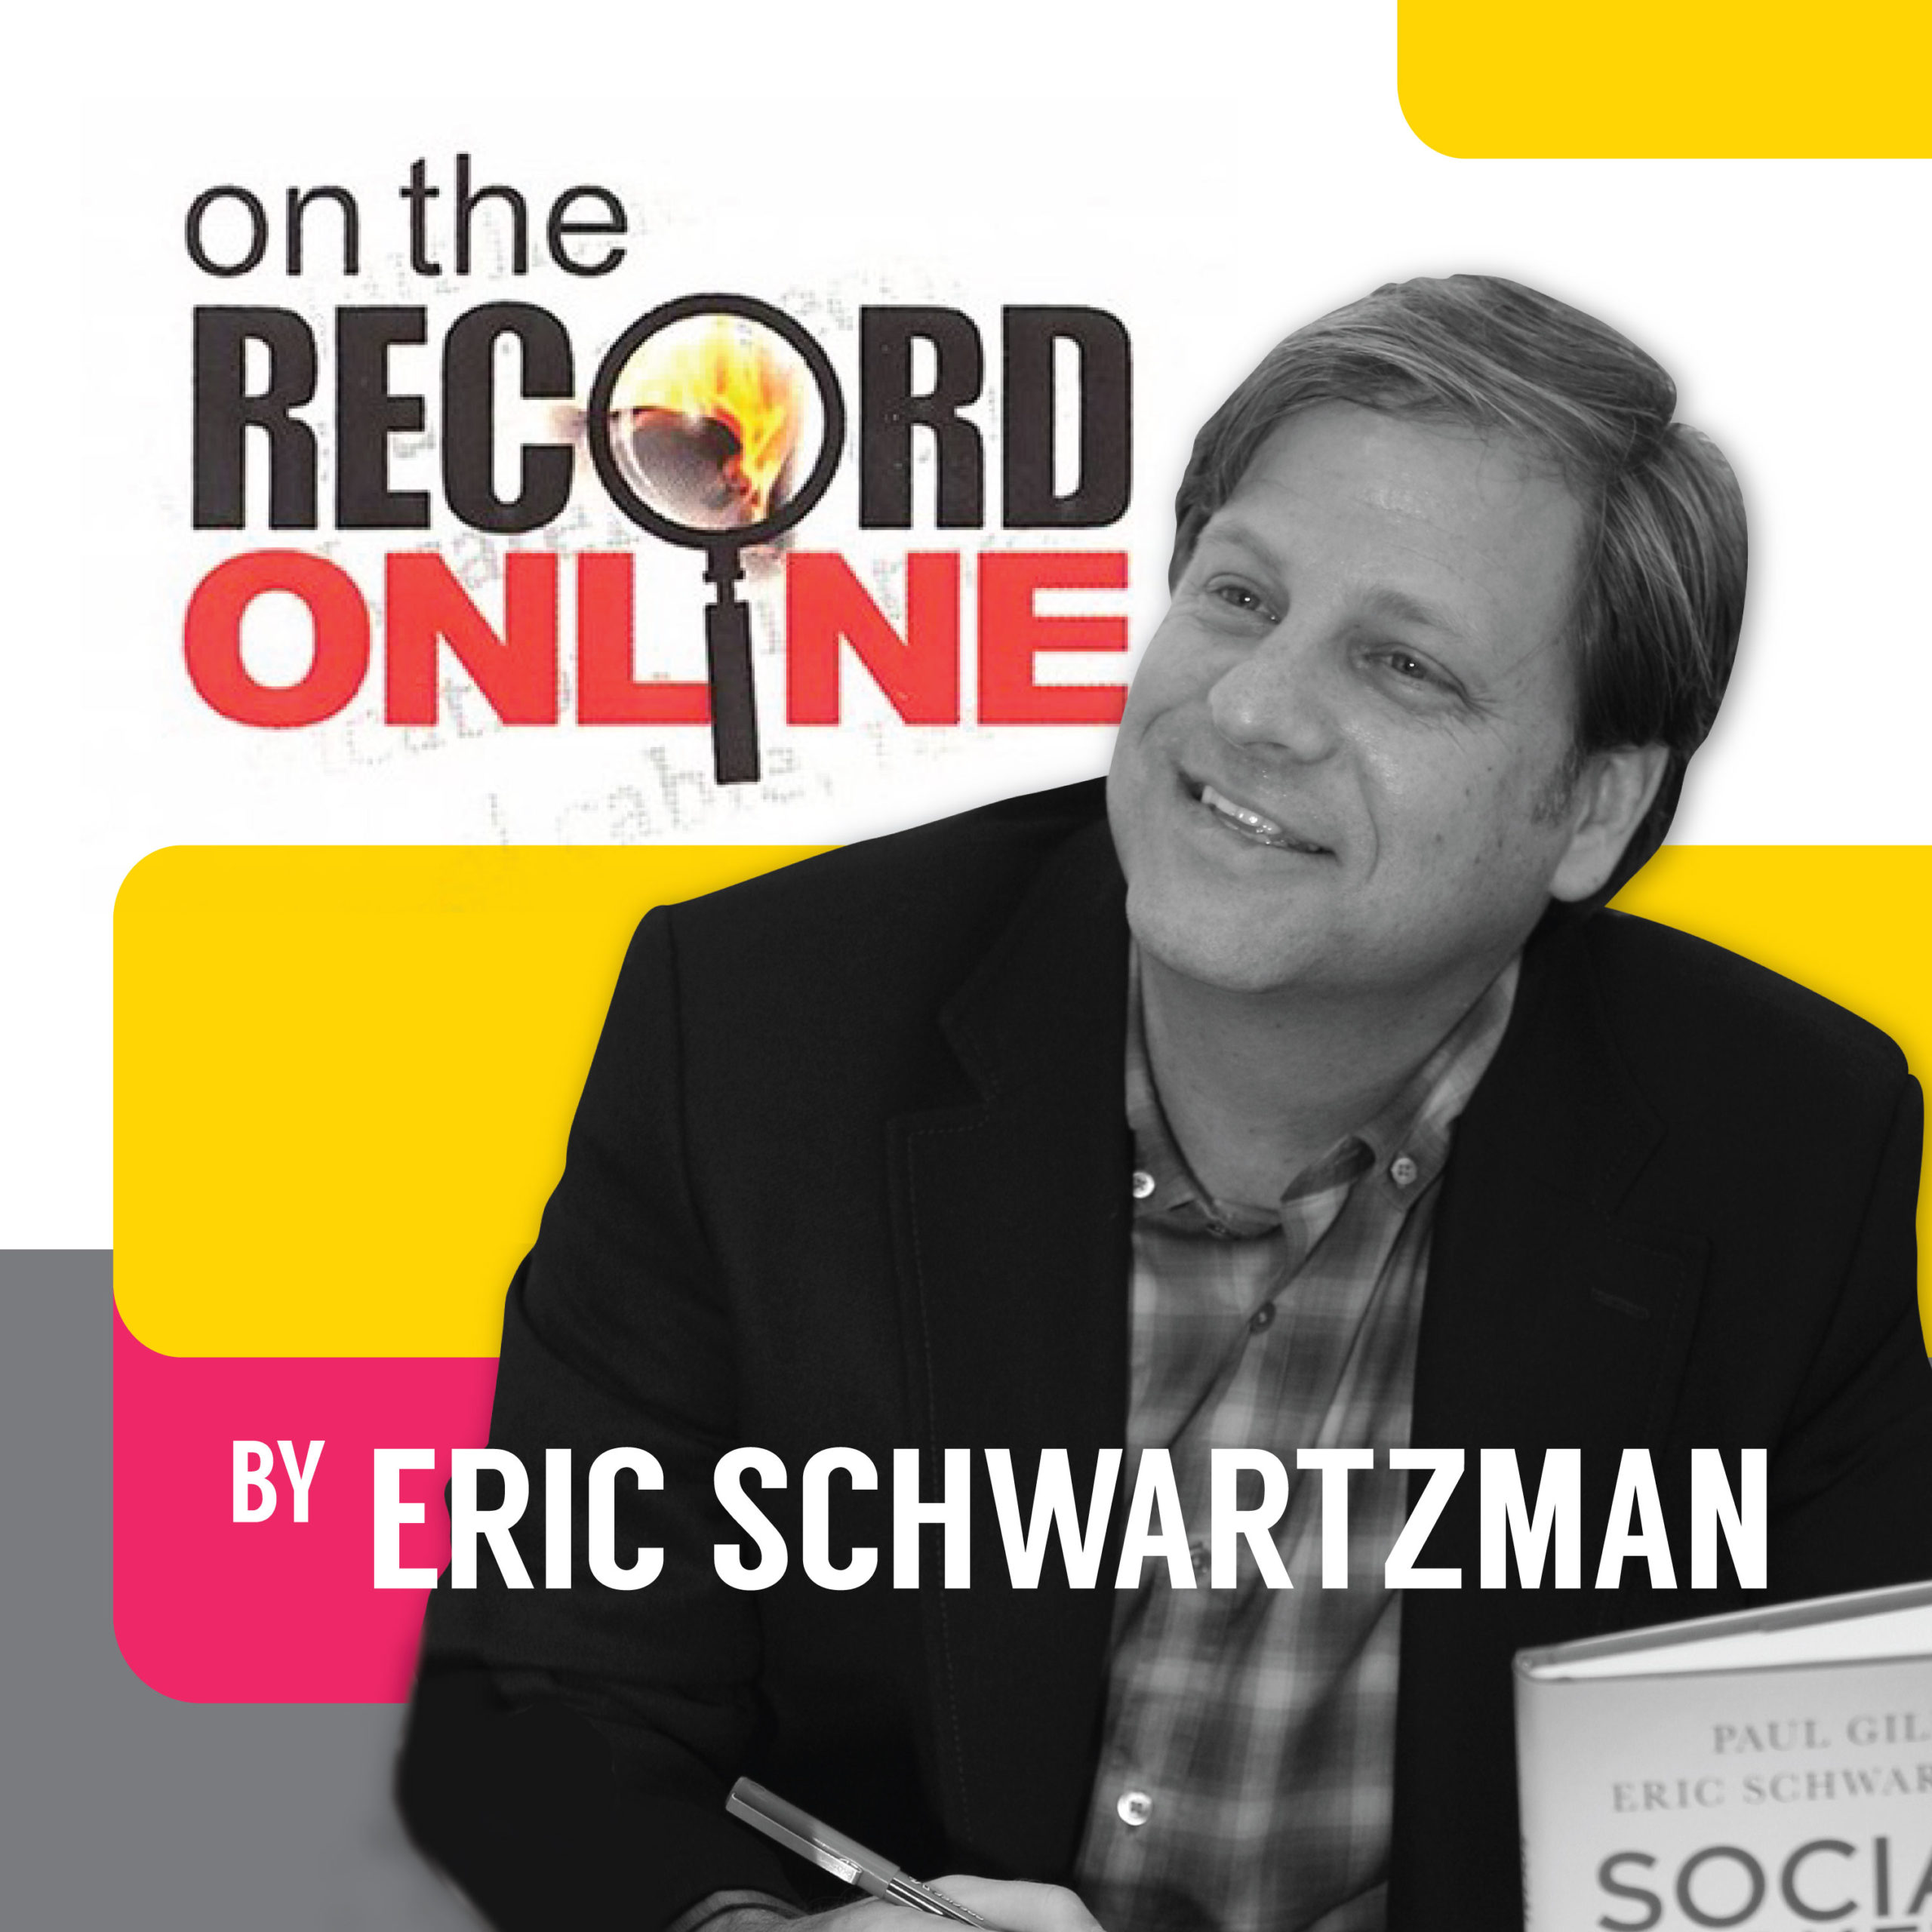 On the Record Online Podcast by Eric Schwartzman